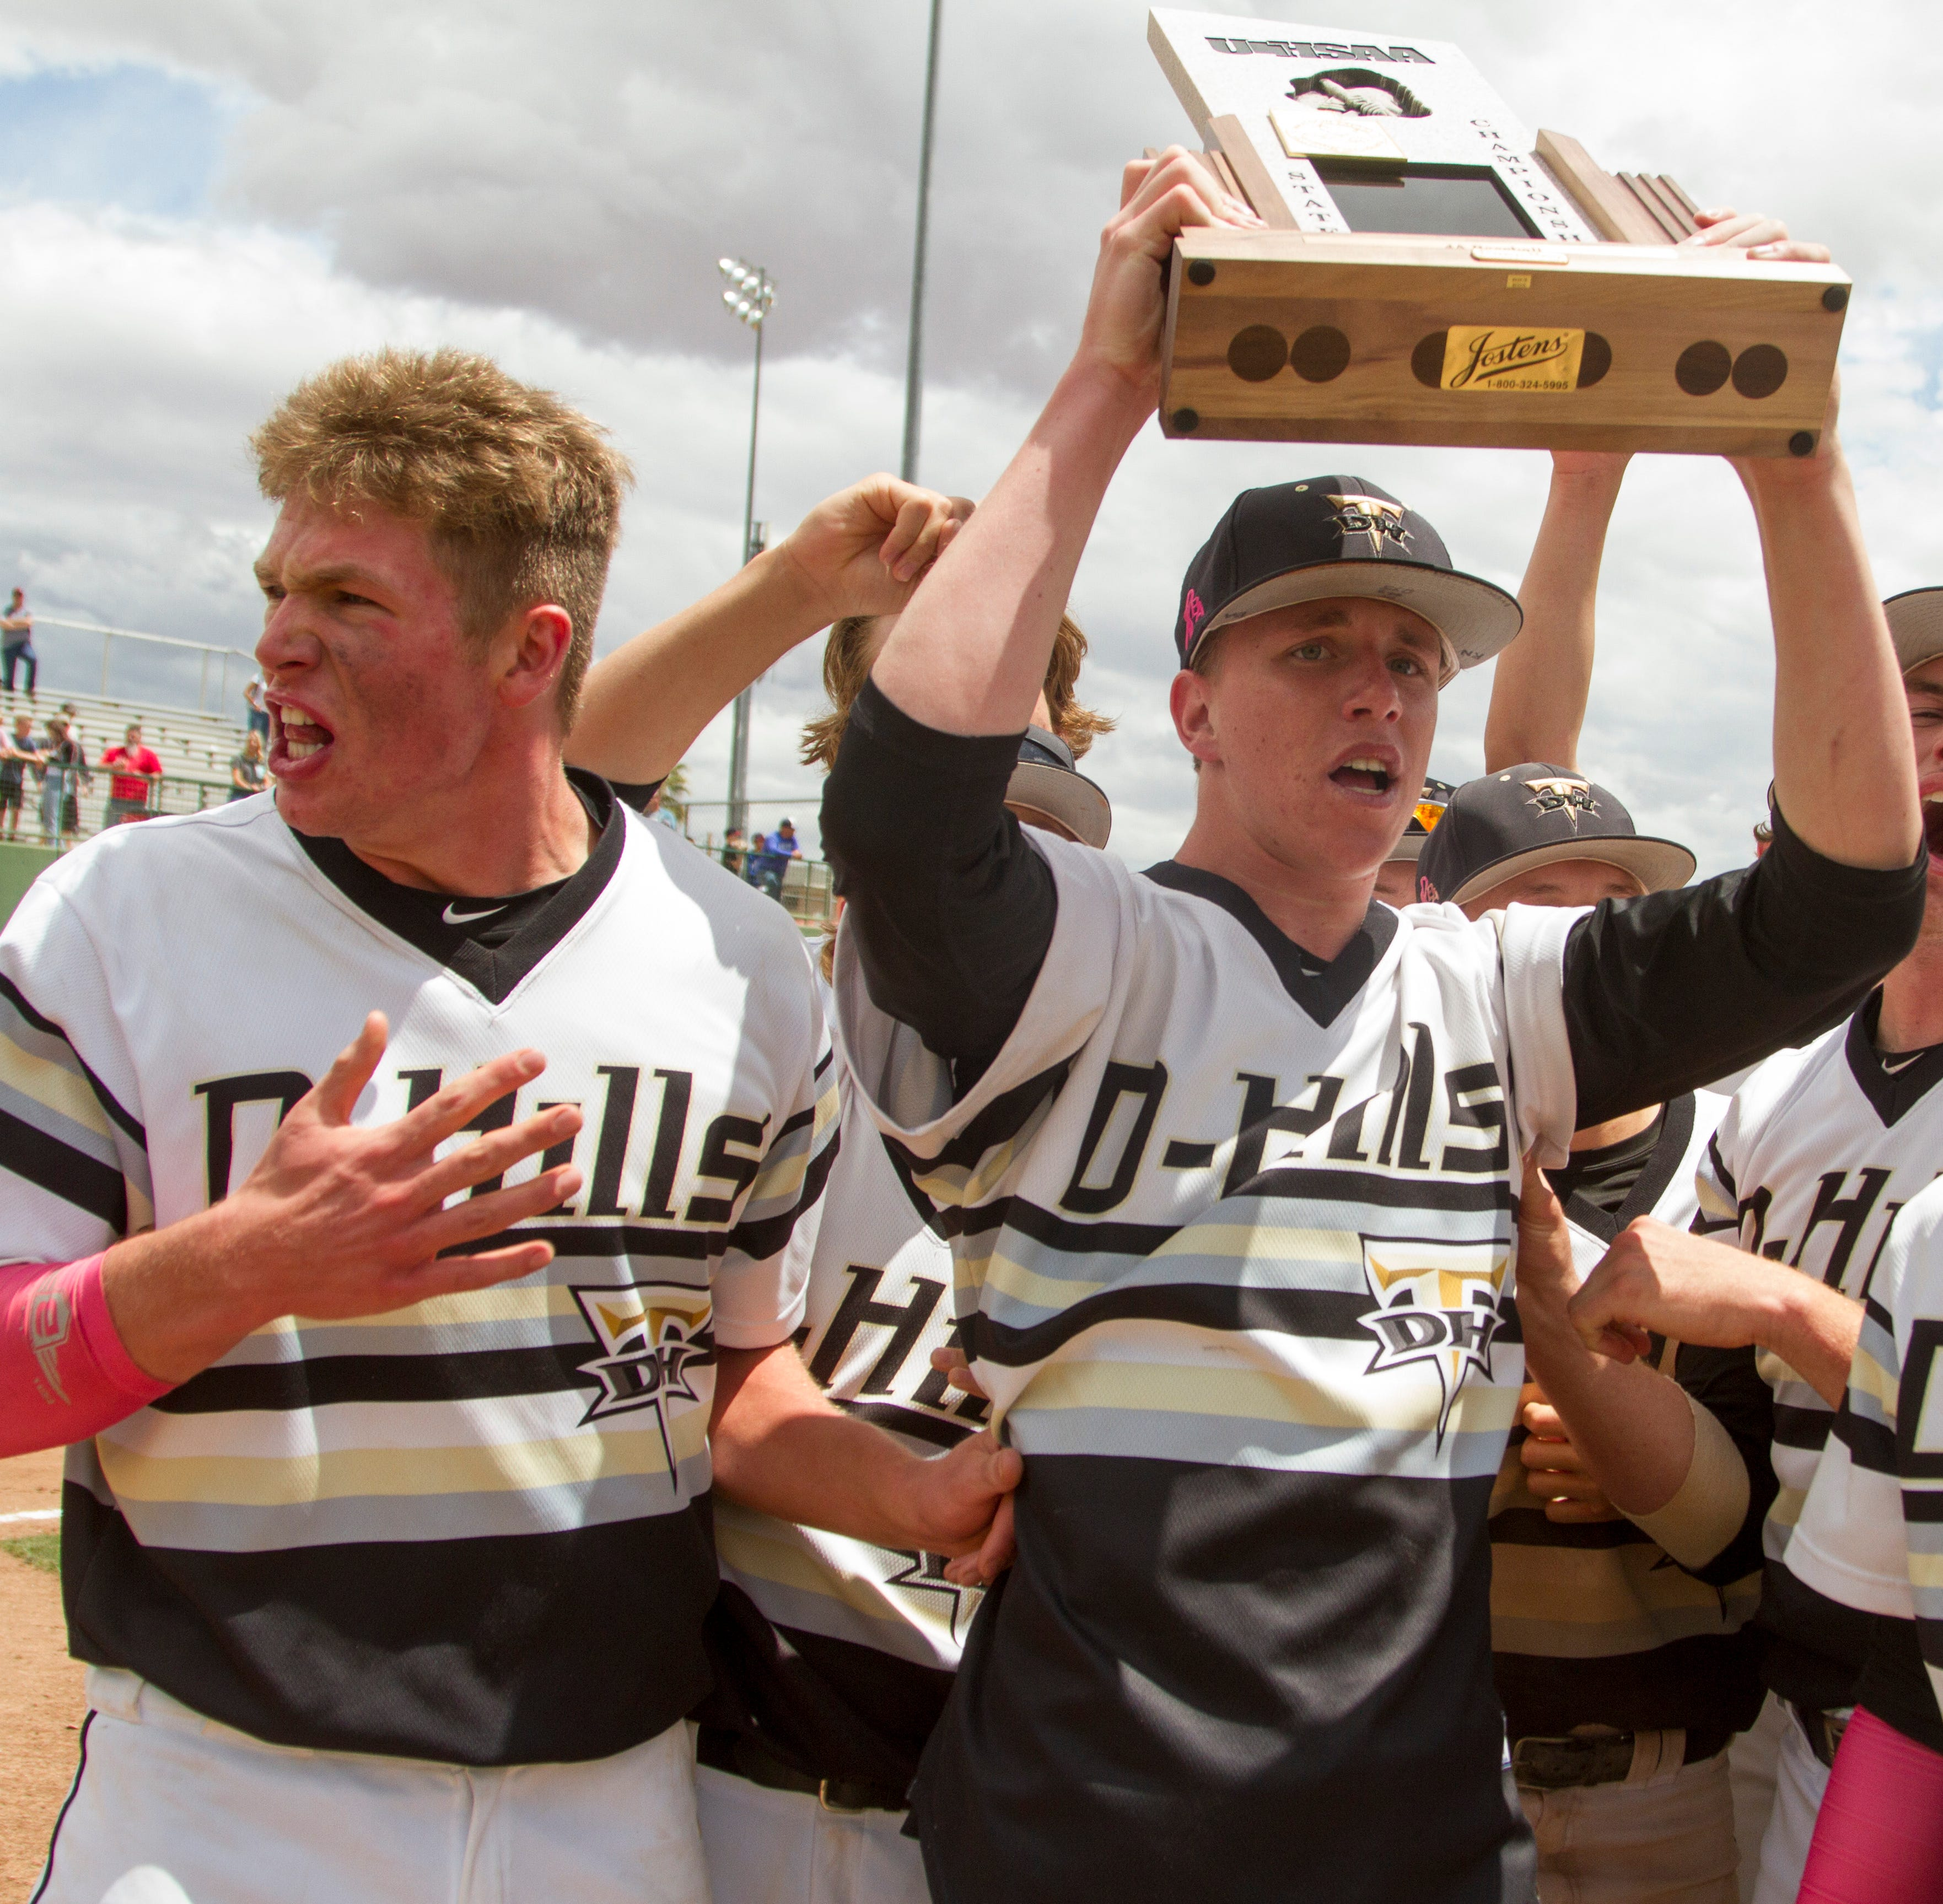 4A baseball championship: Desert Hills avenges last year's loss, routs Dixie